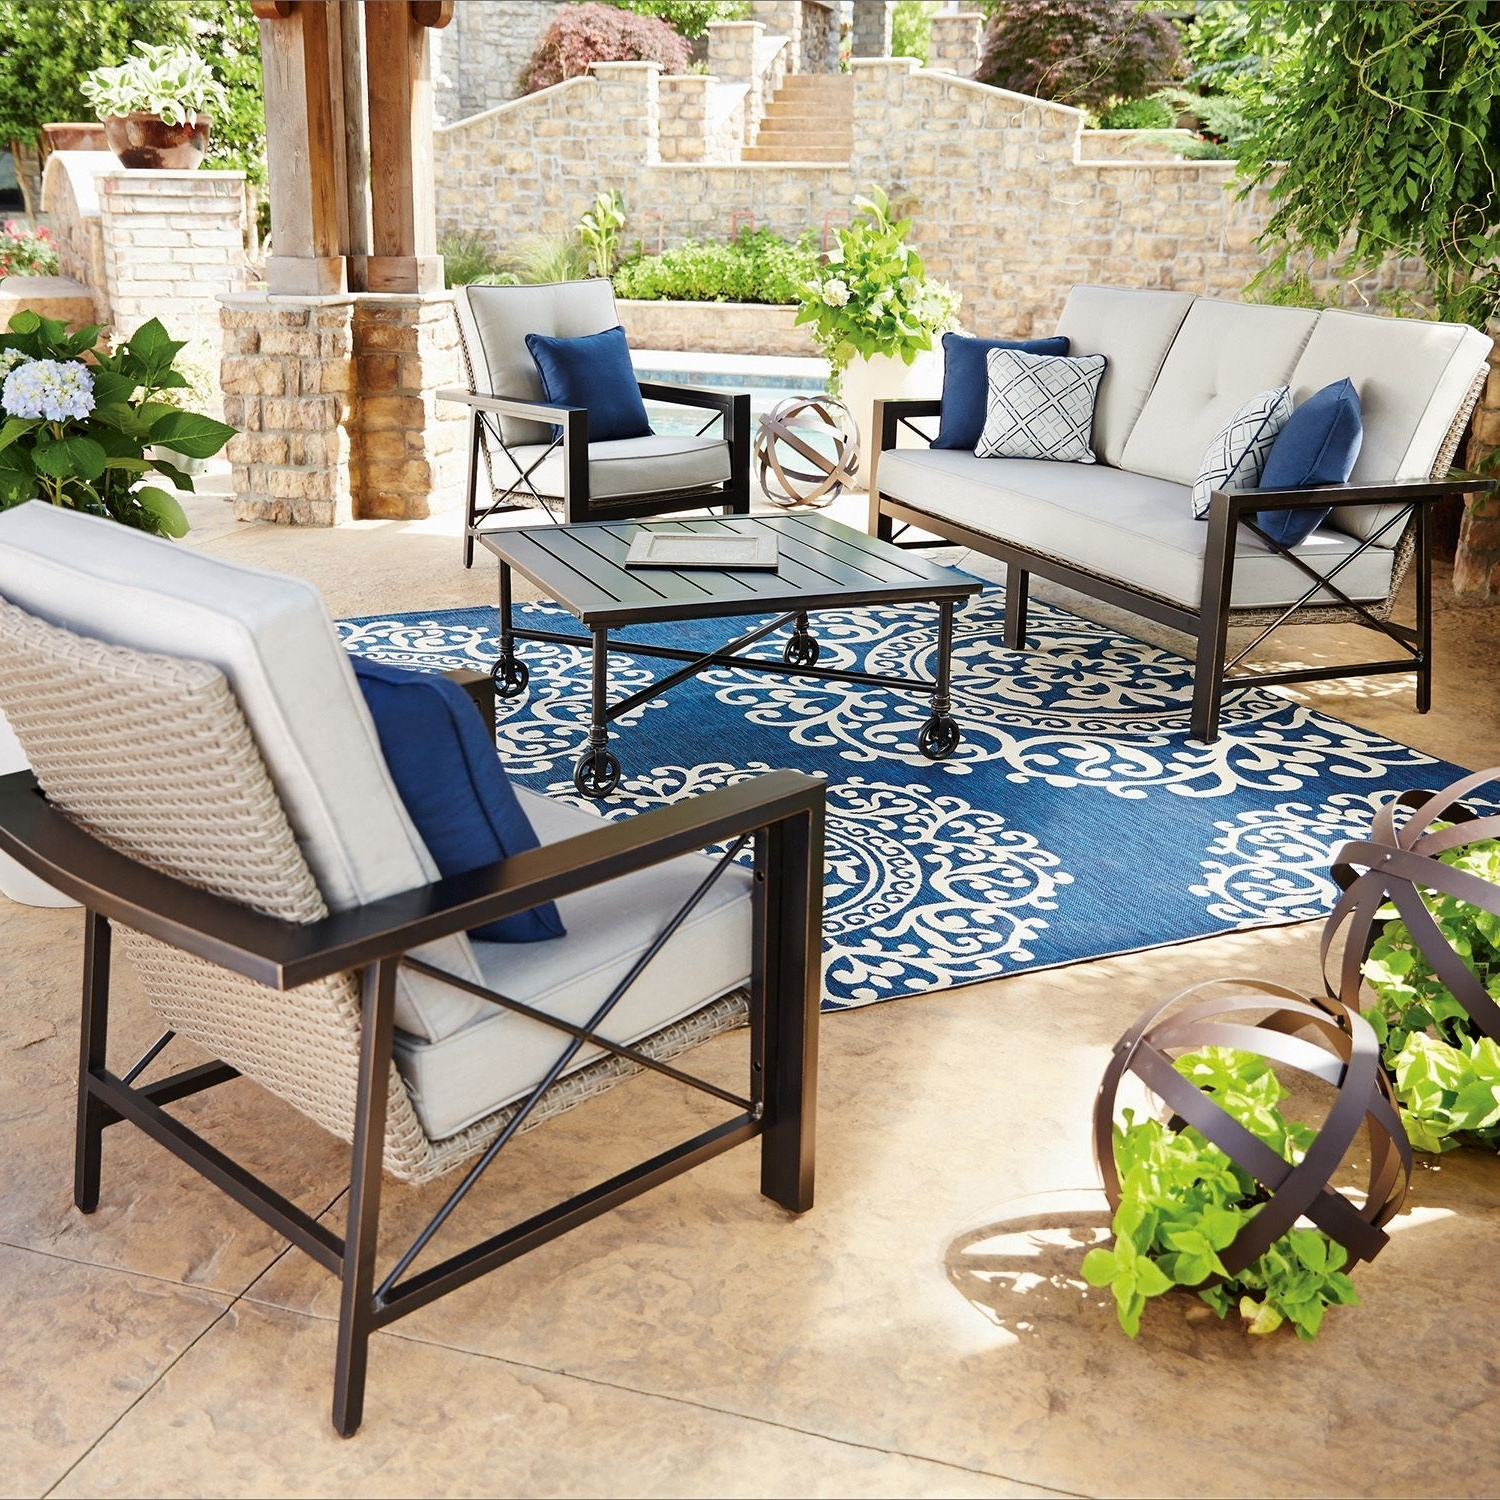 Katana, Backyard And Within Patio Conversation Sets At Sam's Club (View 5 of 20)